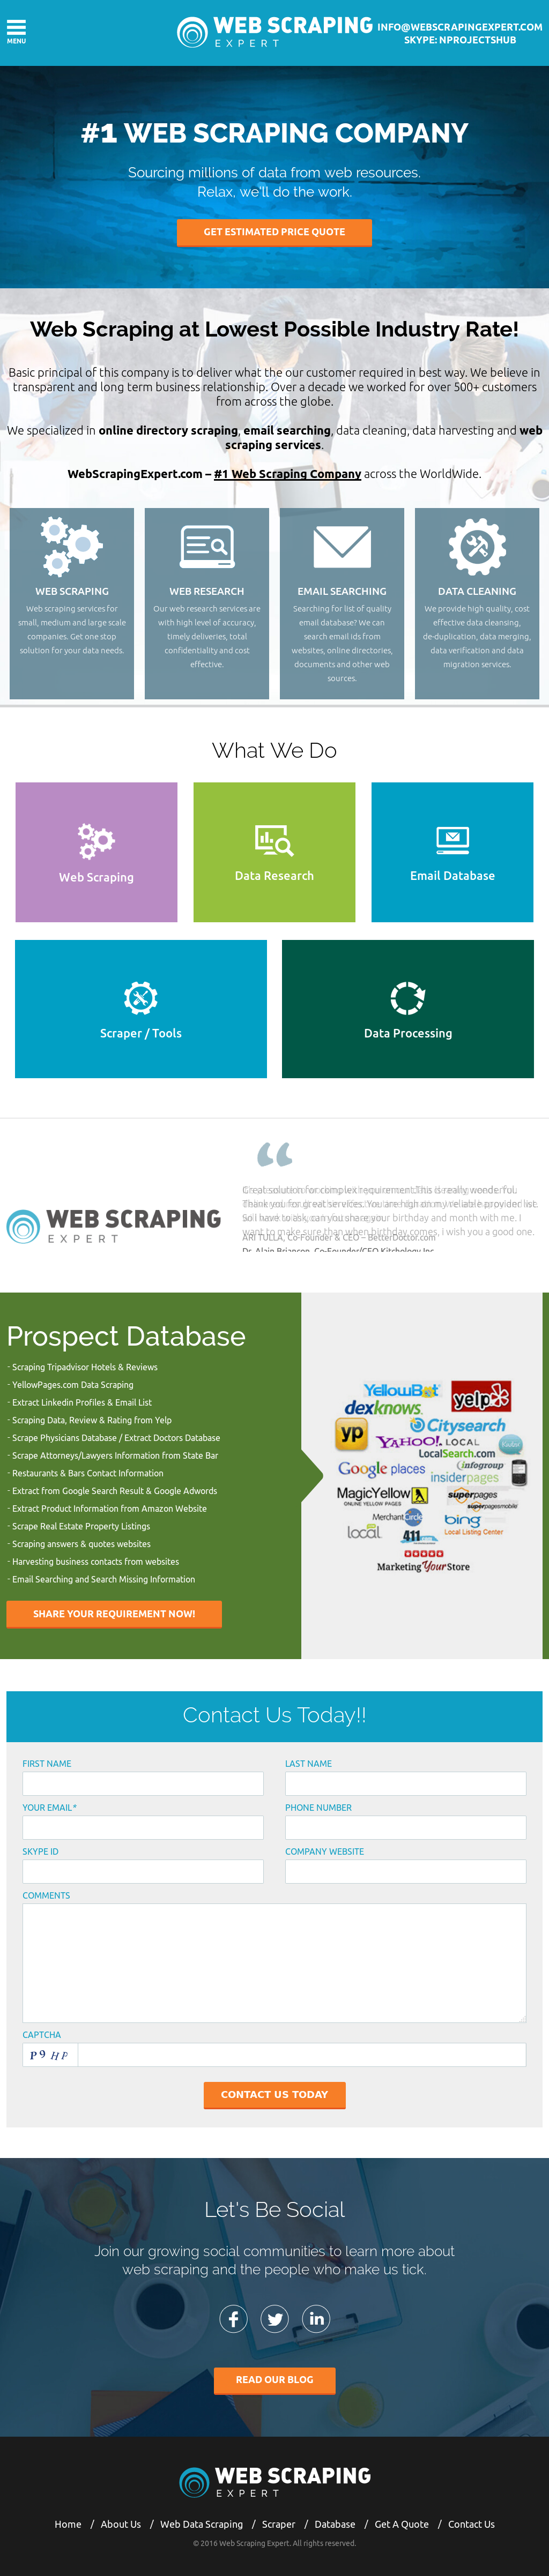 Owler Reports - Press Release: Web Scraping Expert : Website